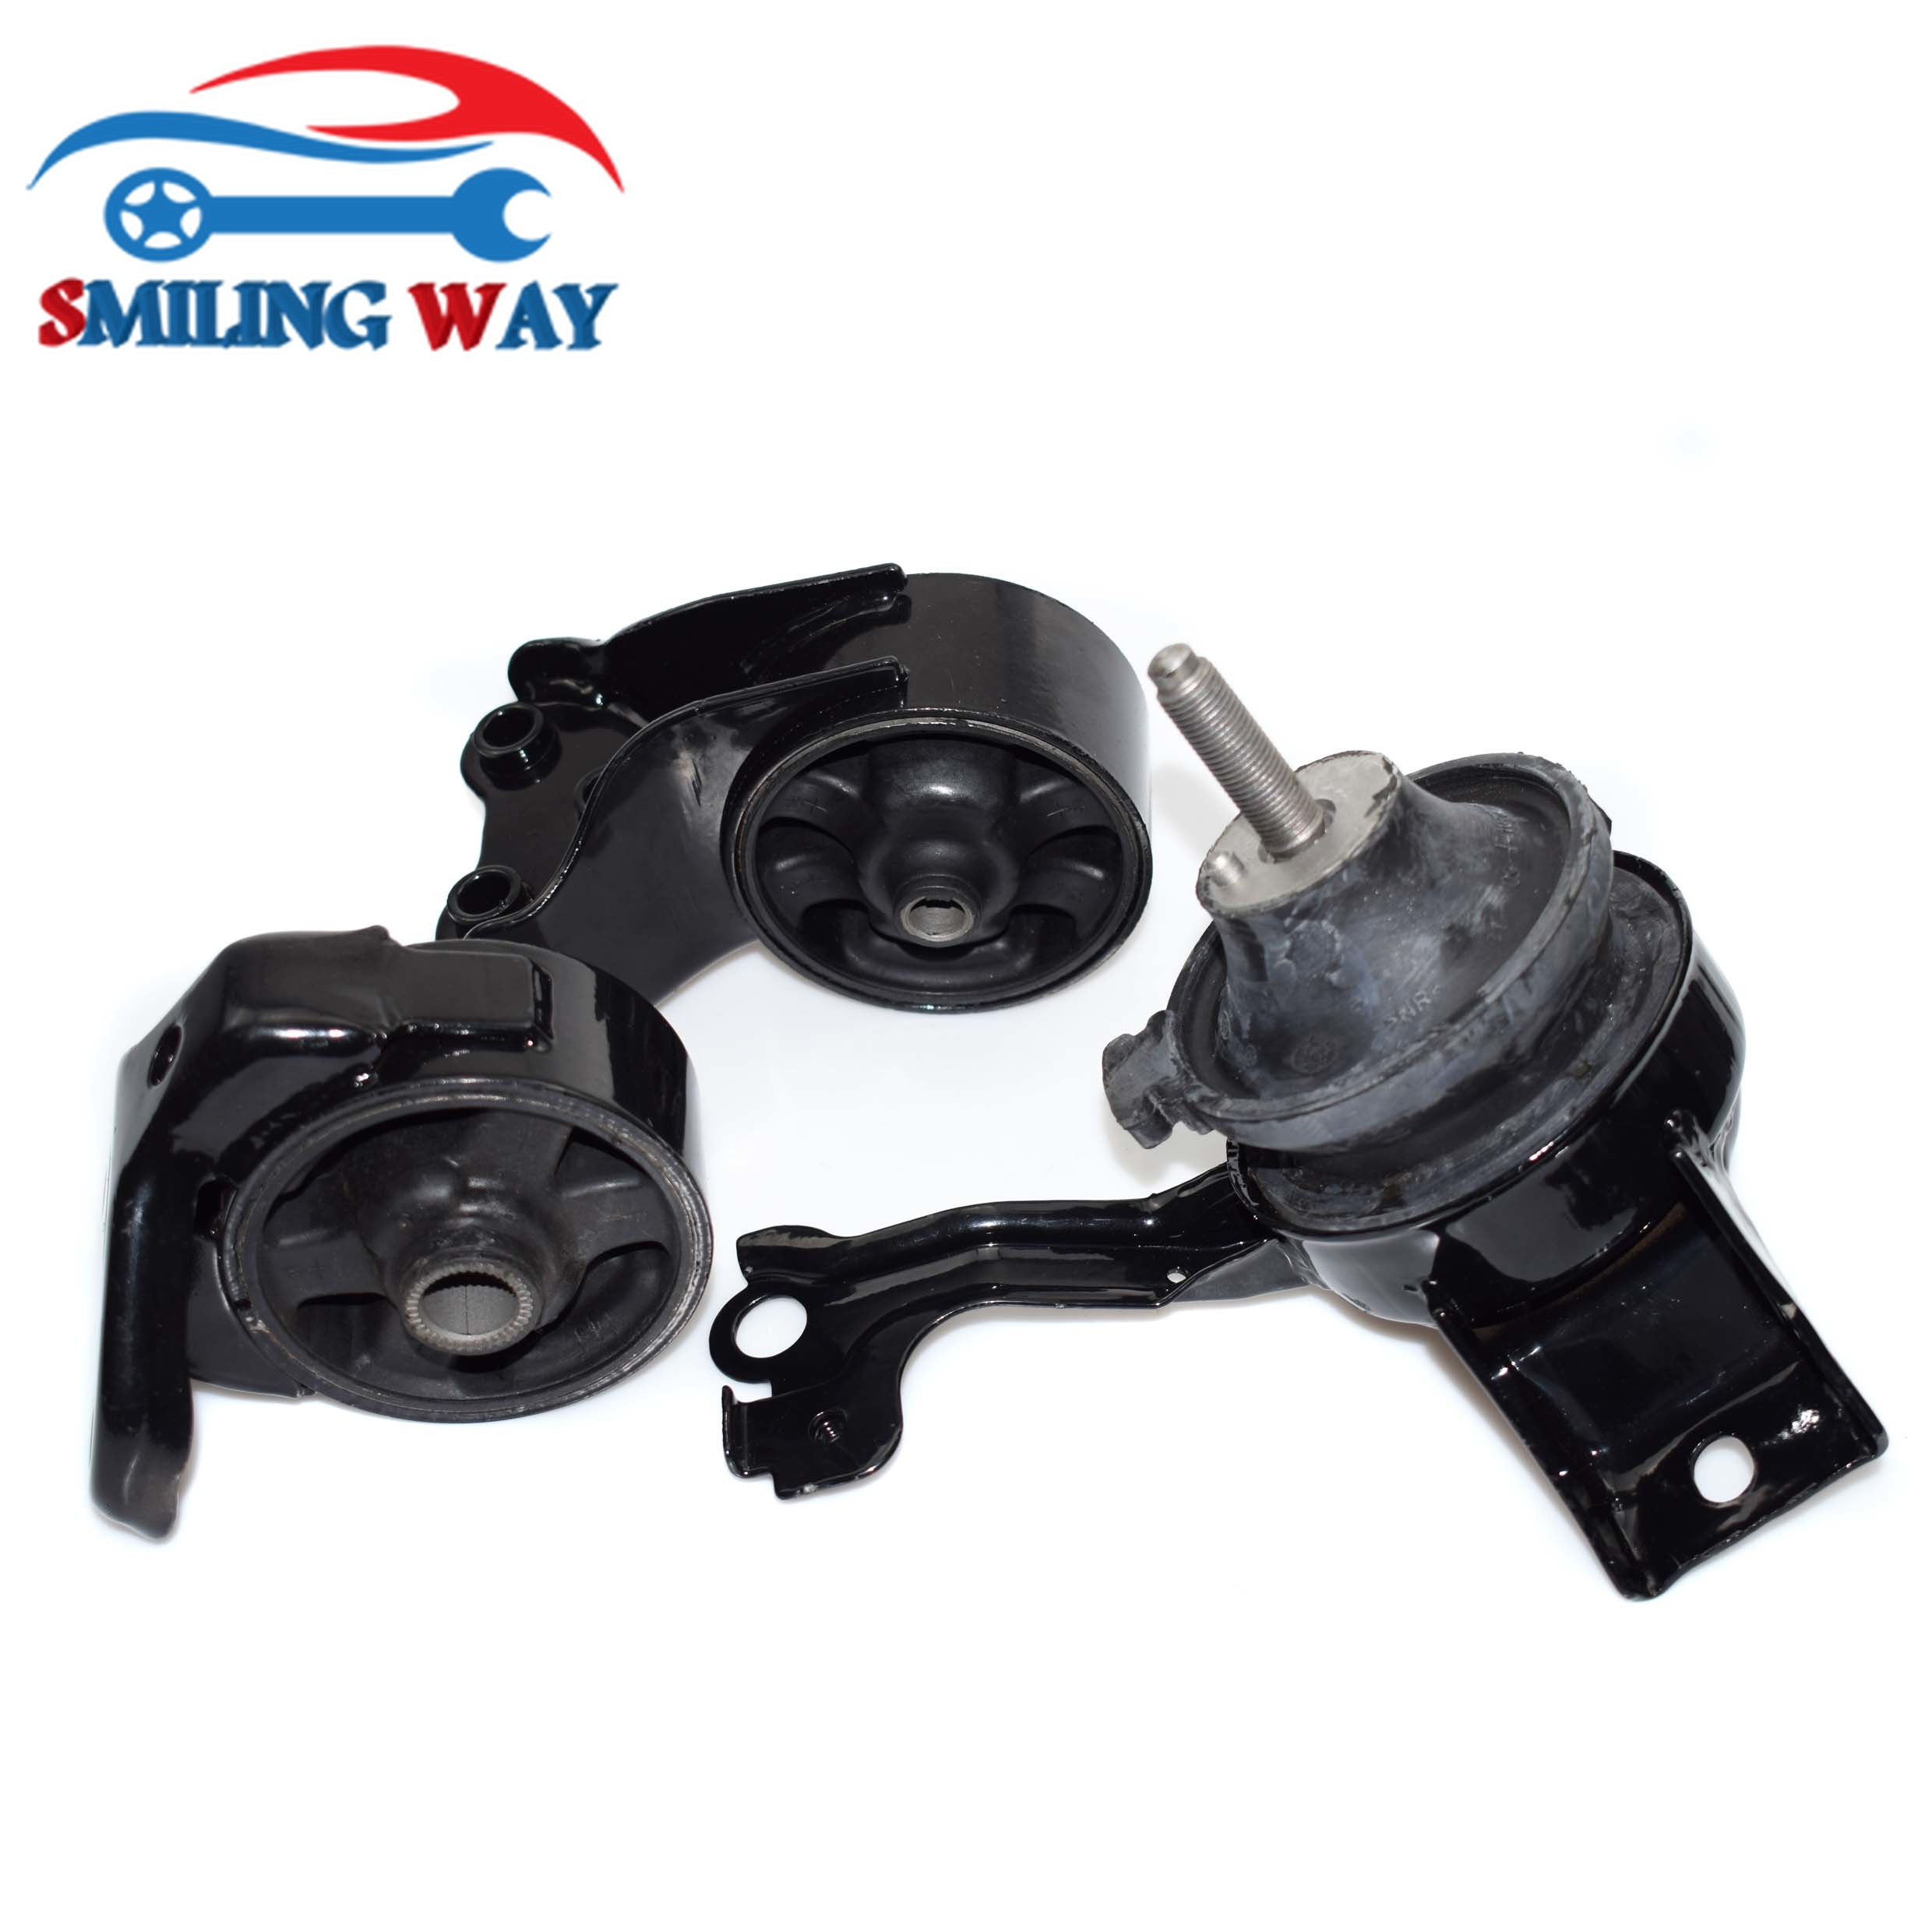 1.6 L For Hyundai Accent 2002-2003 Engine Motor Mount Front 1.5L